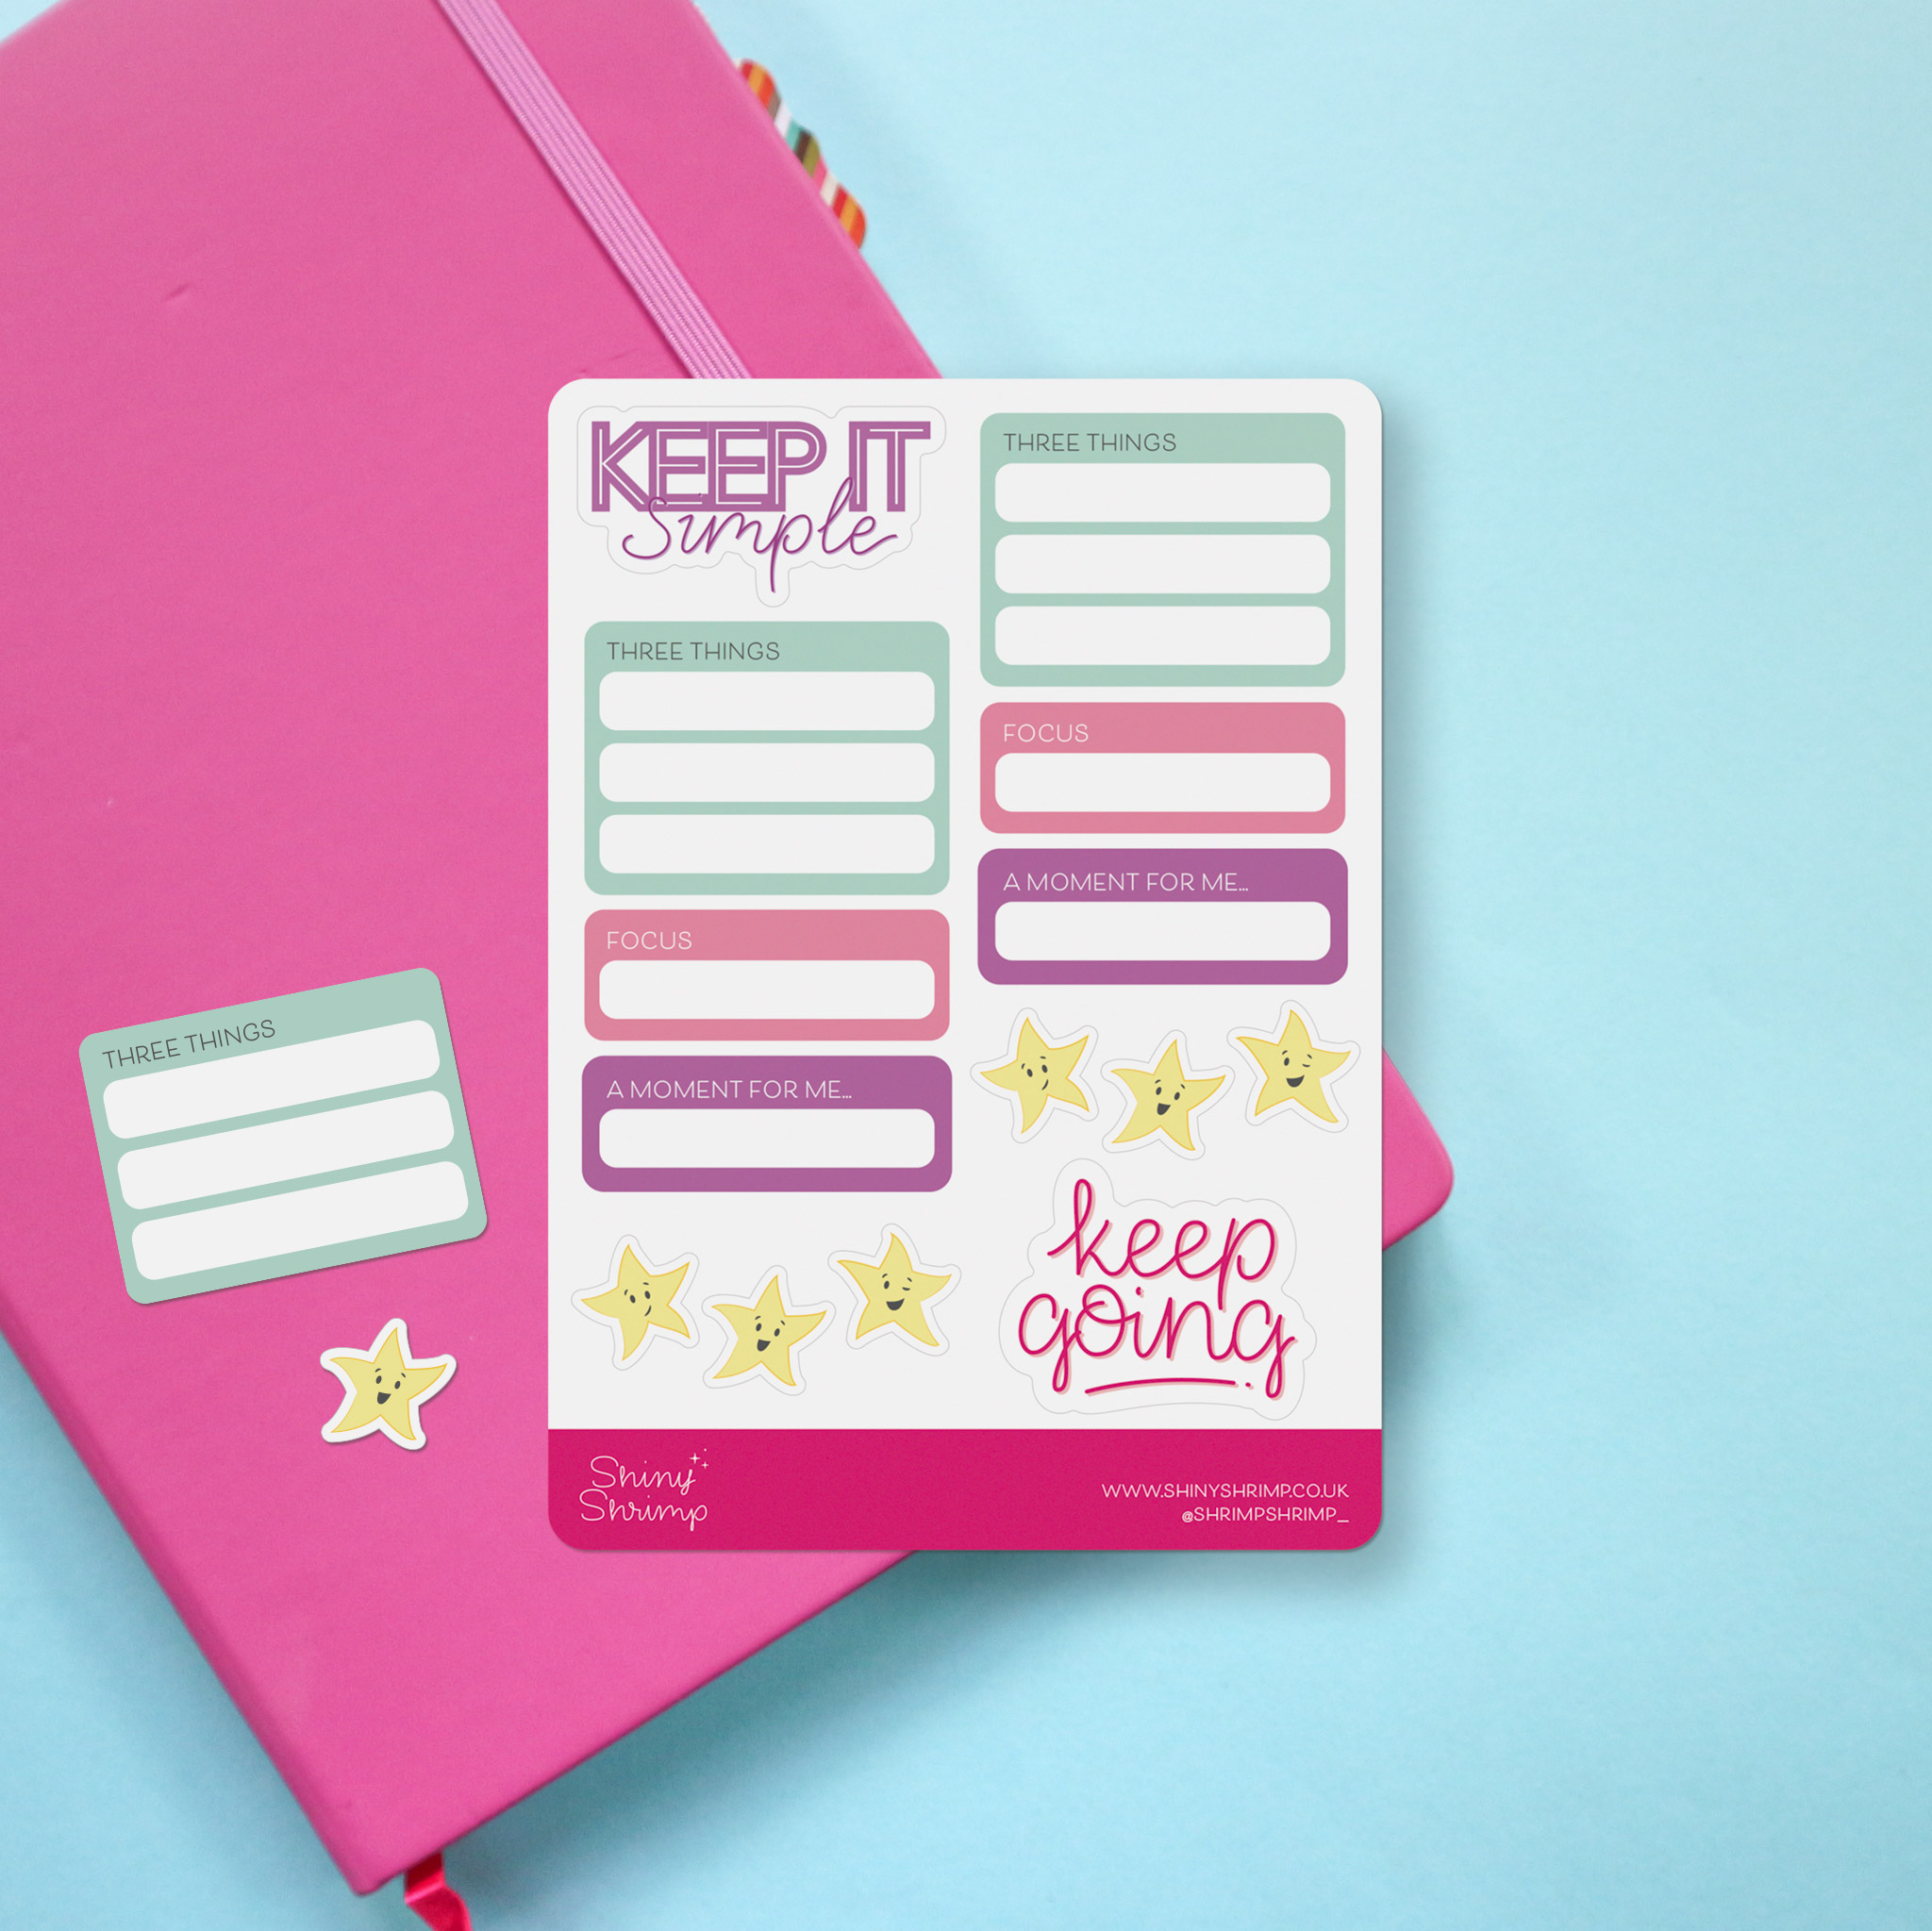 """Photo of a planner sticker sheet. To the top is a sticker saying """"Keep it simple"""" in a hand lettered style, and to the bottom right corner is a sticker saying """"keep going"""" also in a hand lettered style. Elsewhere on the sheet are stickers for your 3 to-do items for the day, a space for focus for the day and """"a moment for me."""" There are also 6 gold stars to celebrate your achievements."""